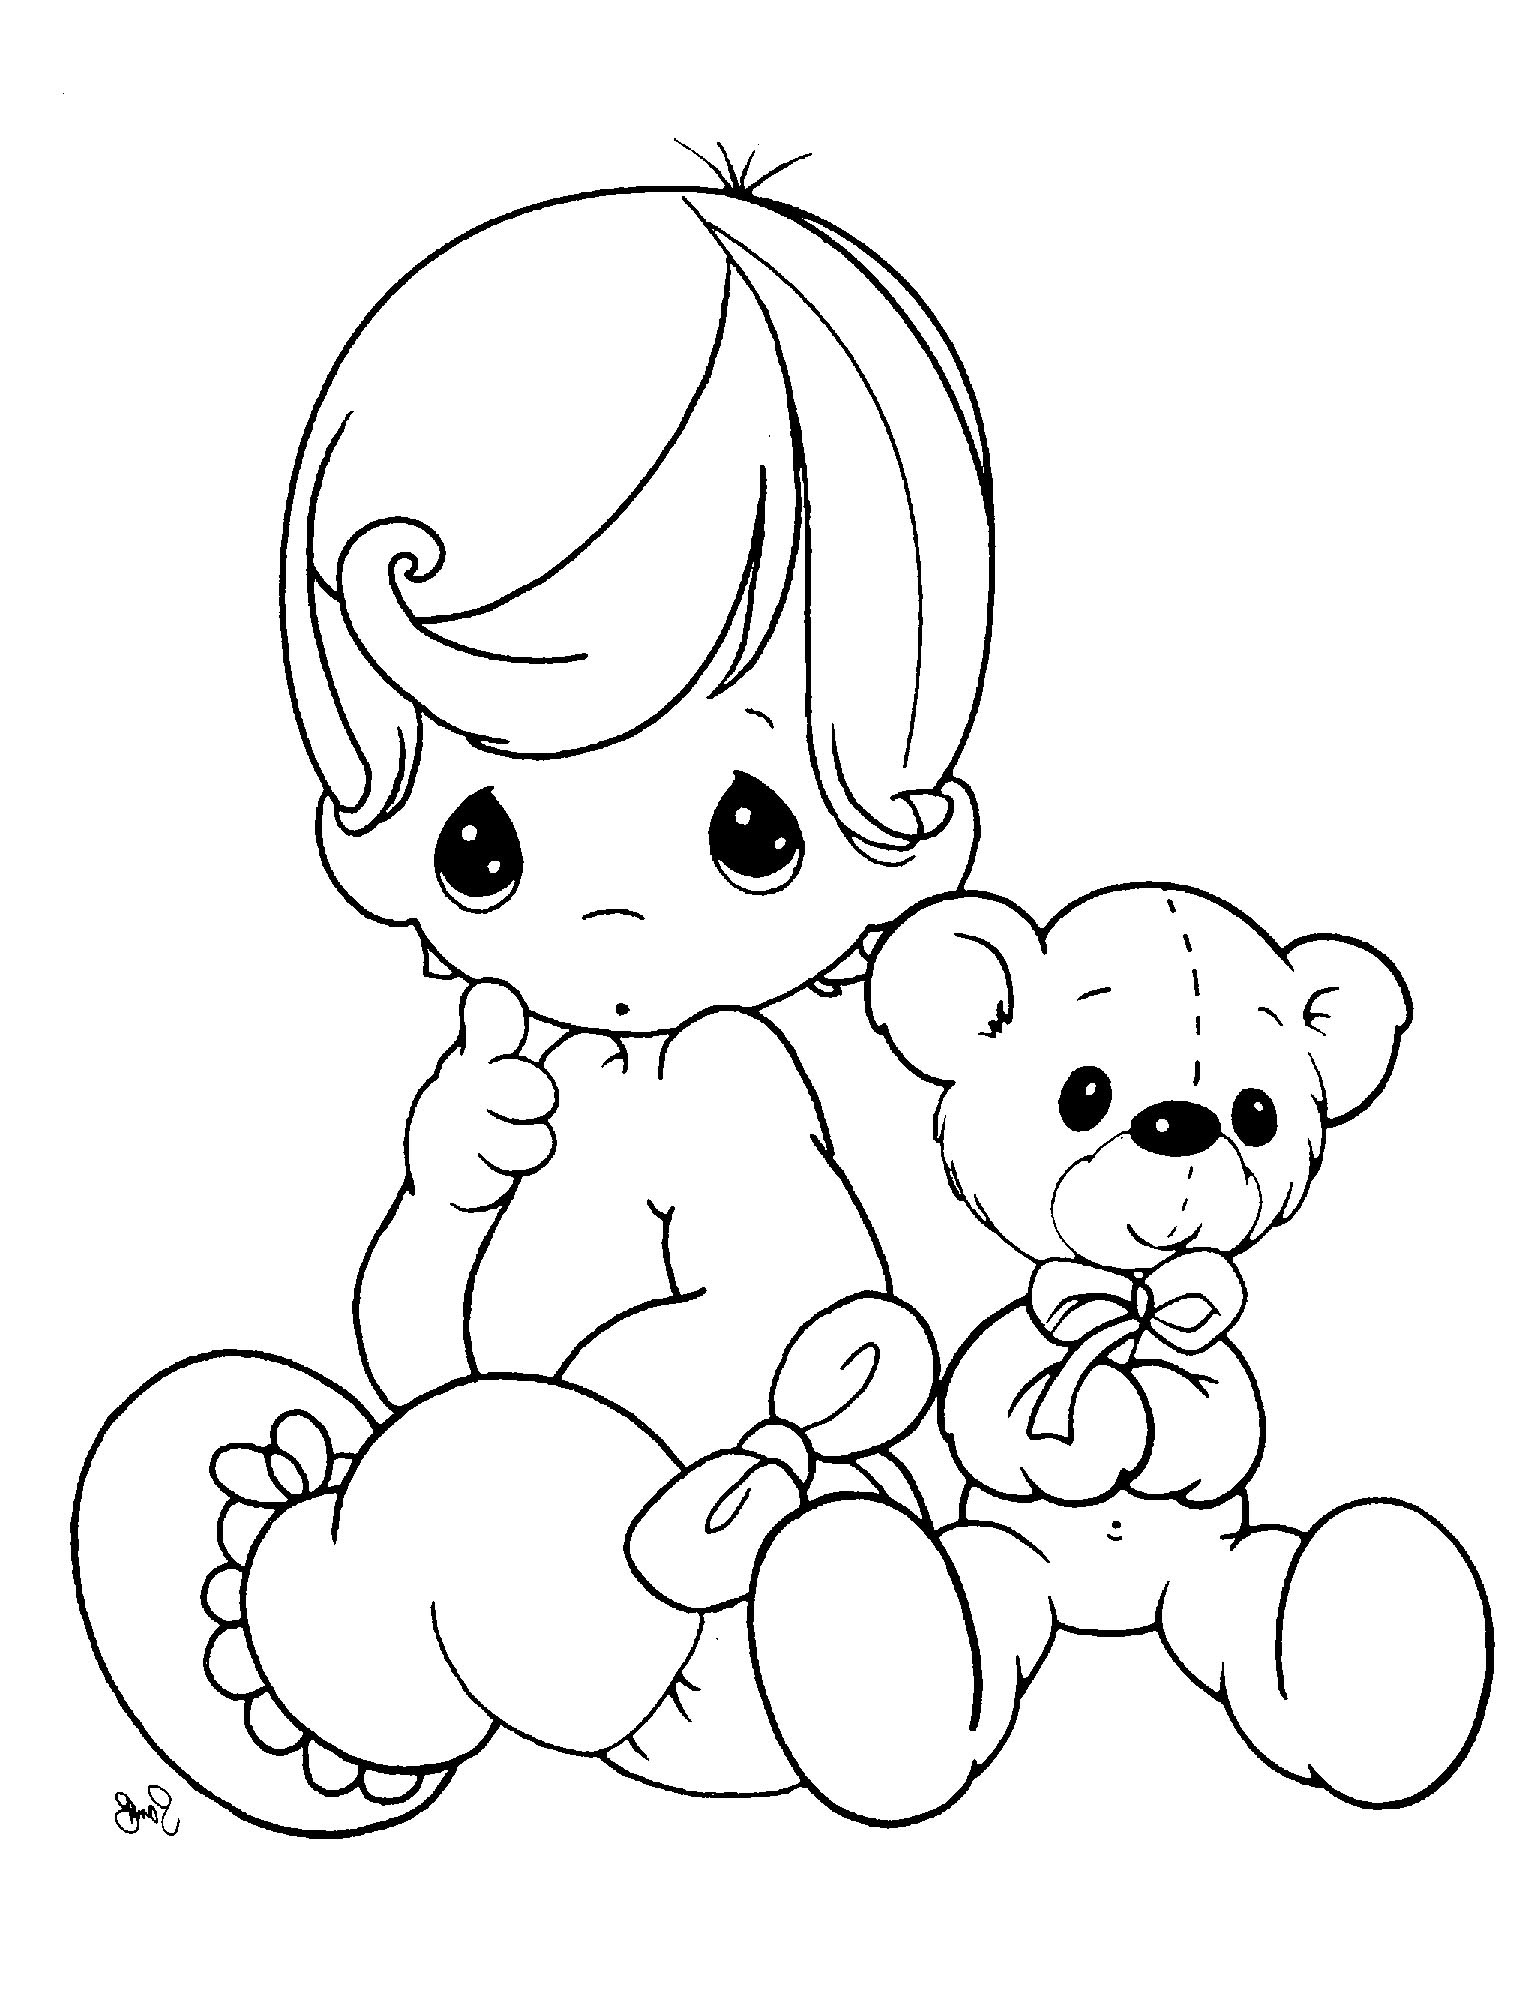 1524x2008 Precious Moments Sitting With A Cute Doll Coloring Pages Kids